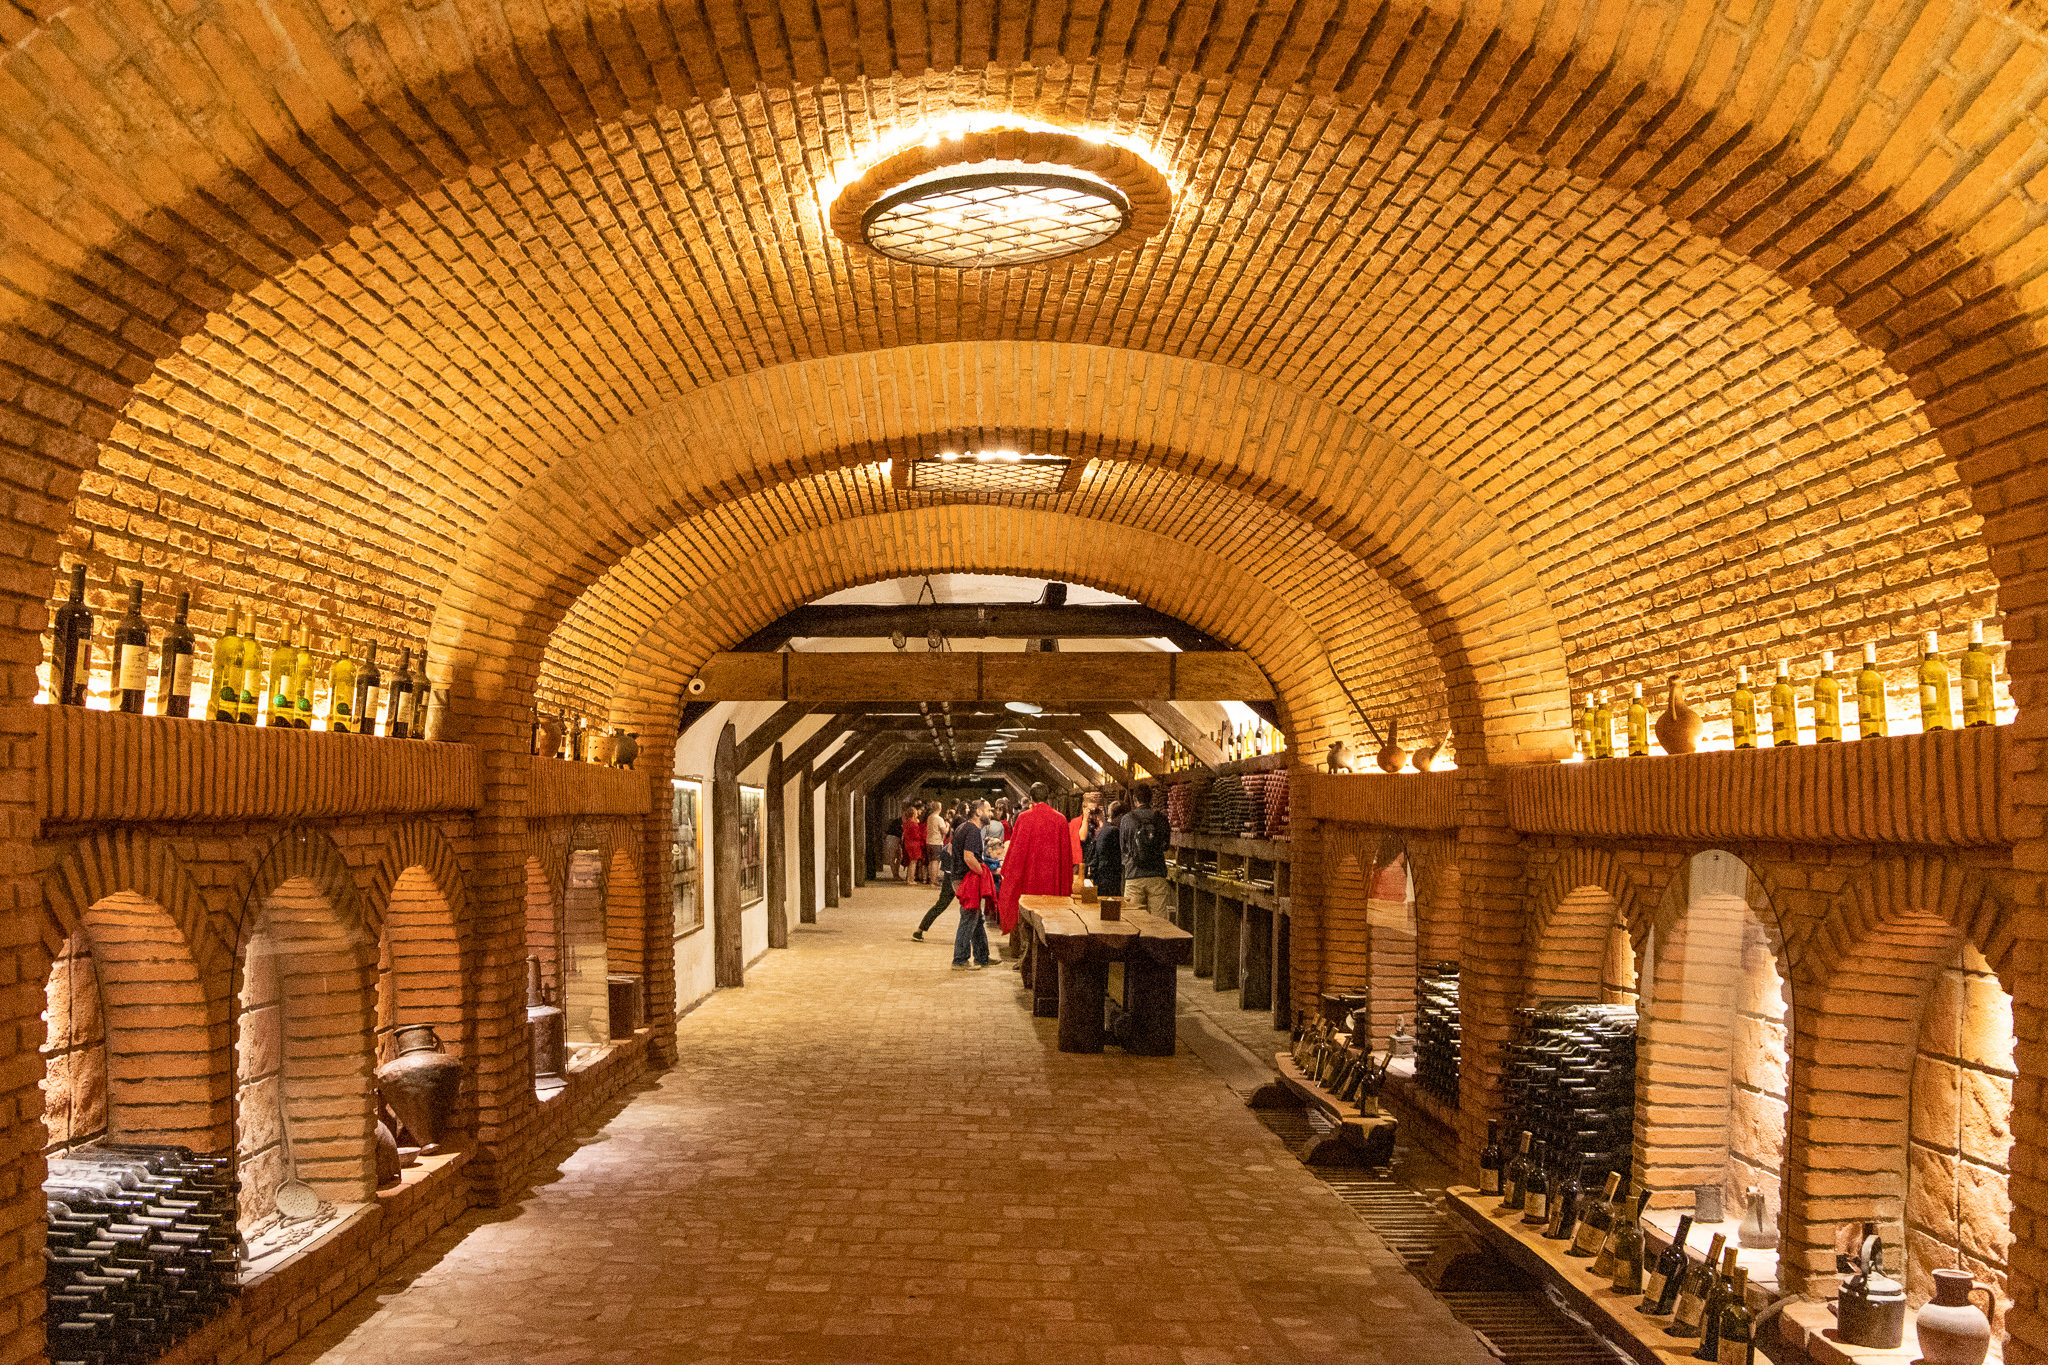 The tunnel of wine